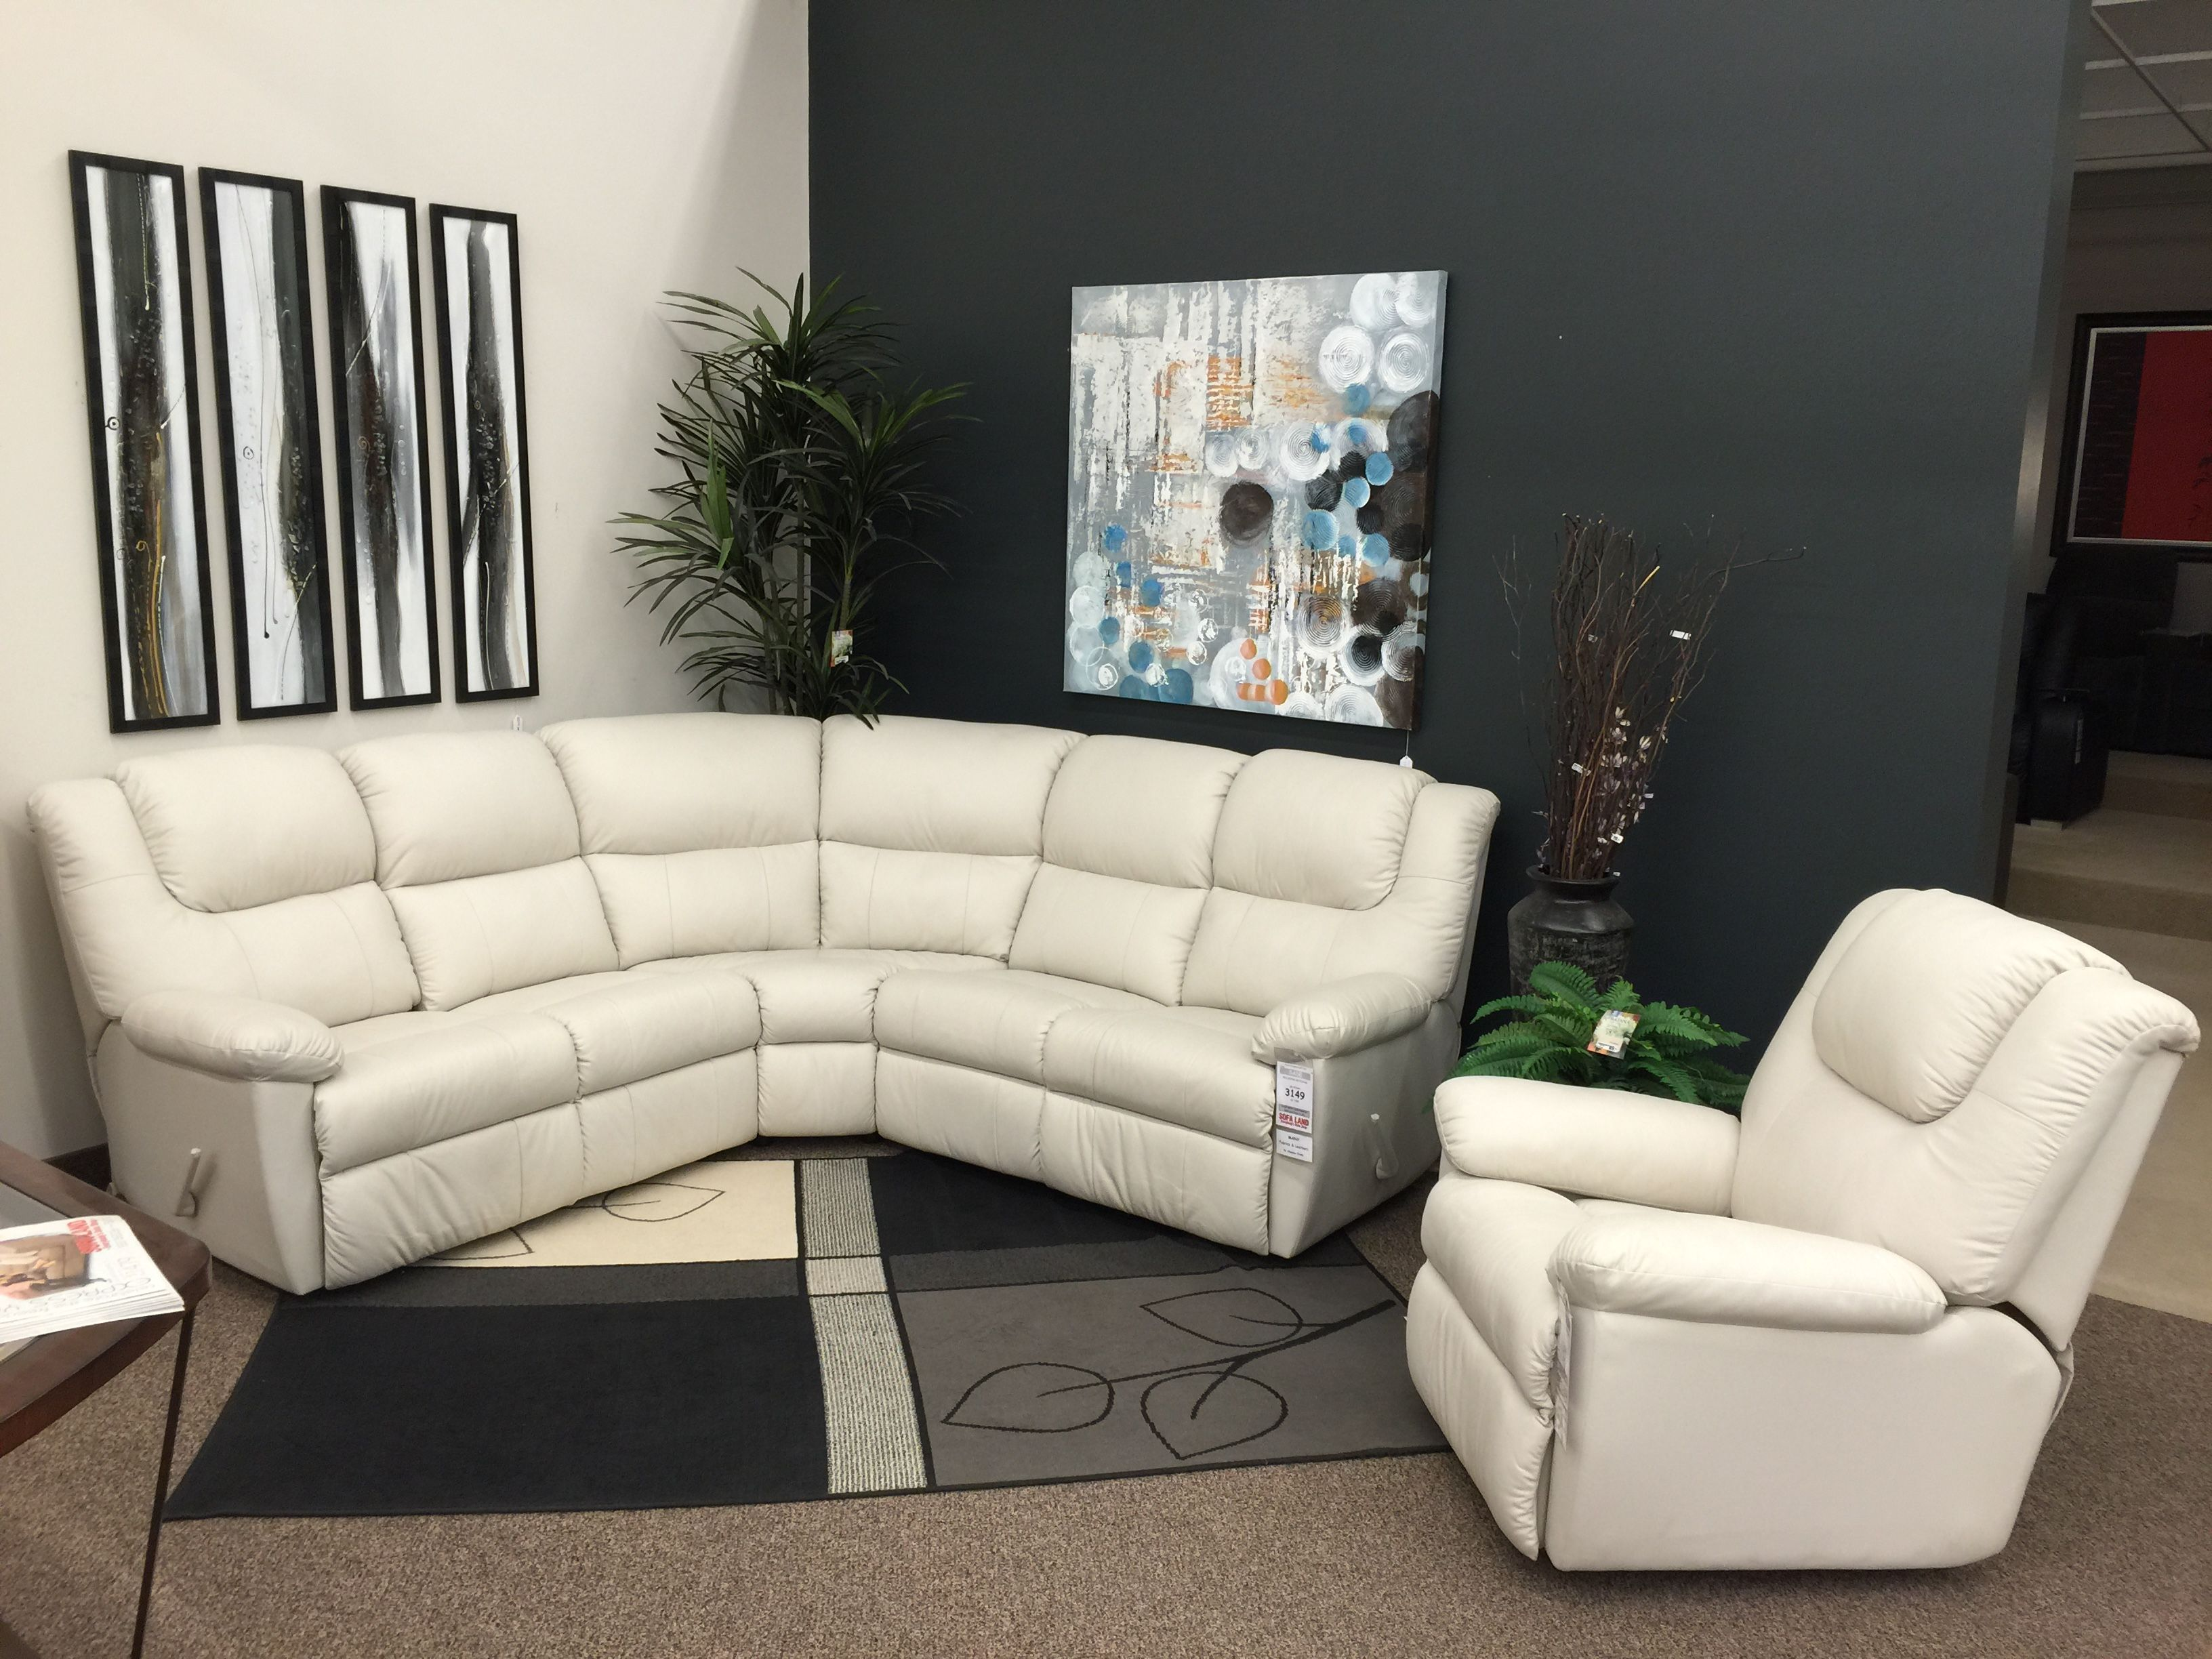 Sade Is A Great Reclining Sectional For Small Spaces Only 96 X 96 As Shown Available In Fabric O Sofas For Small Spaces Sectional Sofa Small Sectional Sofa